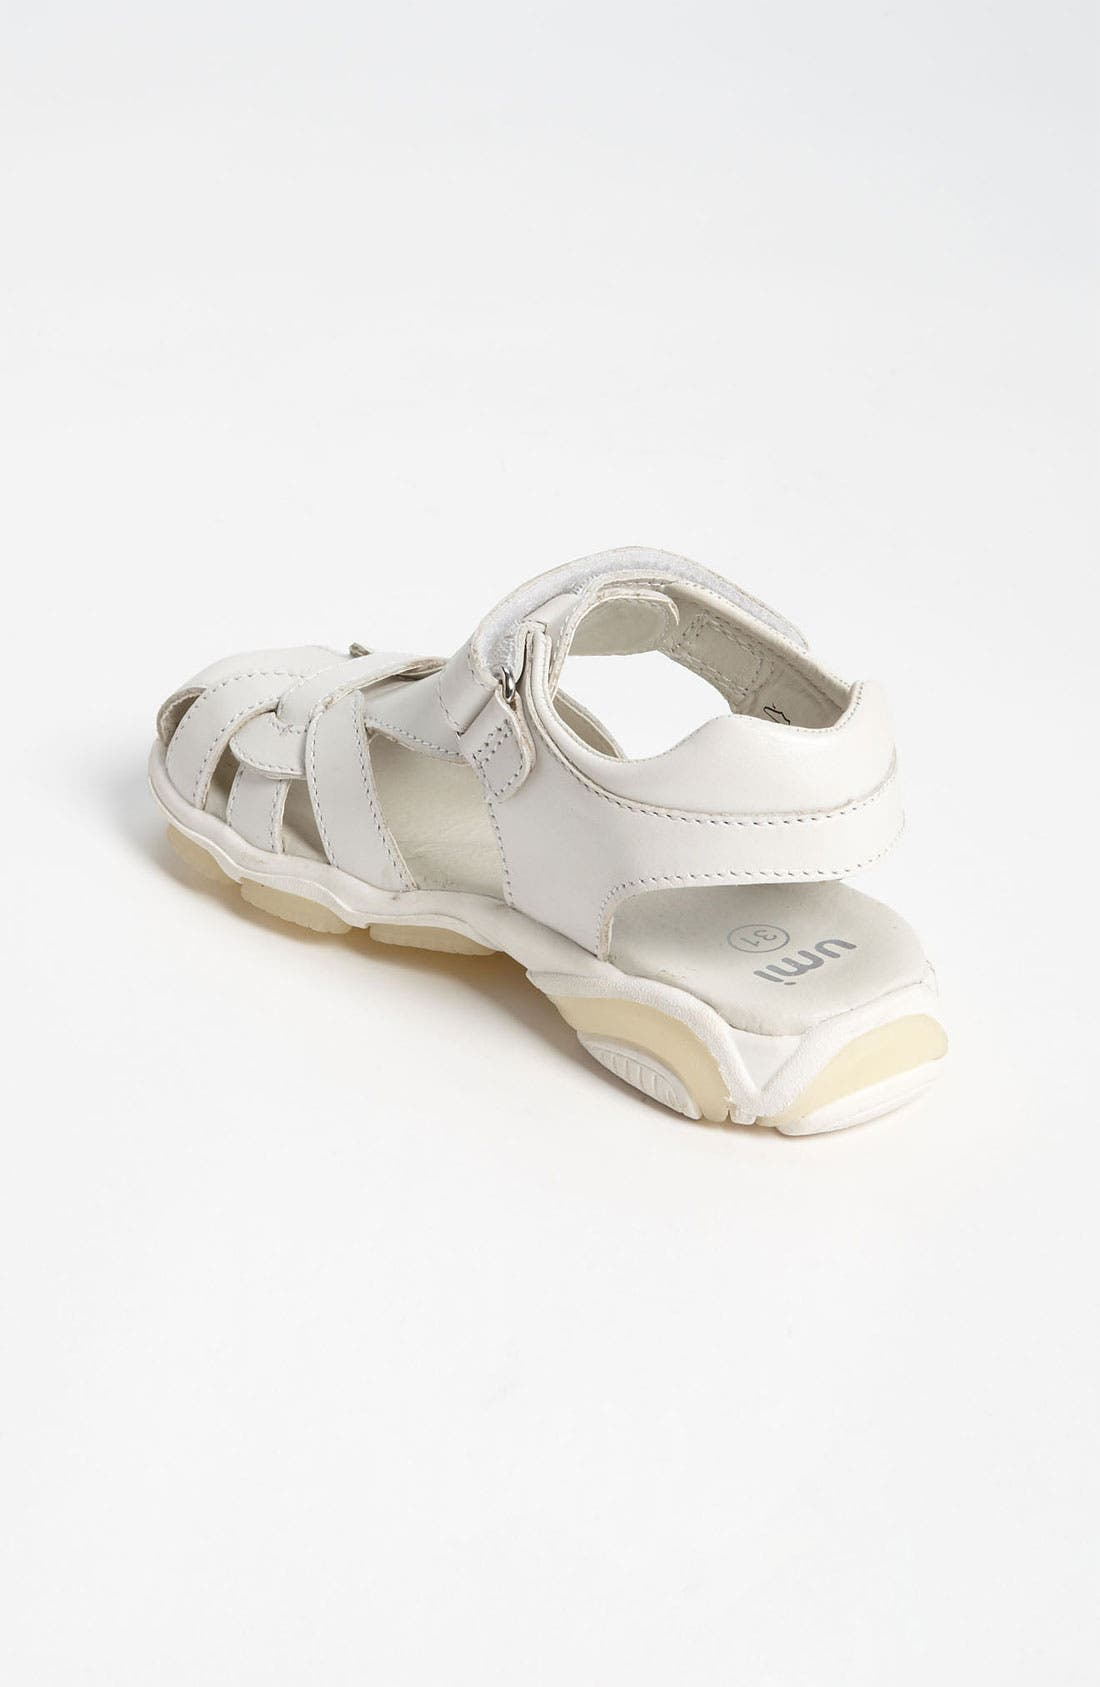 Alternate Image 2  - Umi 'Natalia' Fisherman Sandal (Toddler, Little Kid & Big Kid)